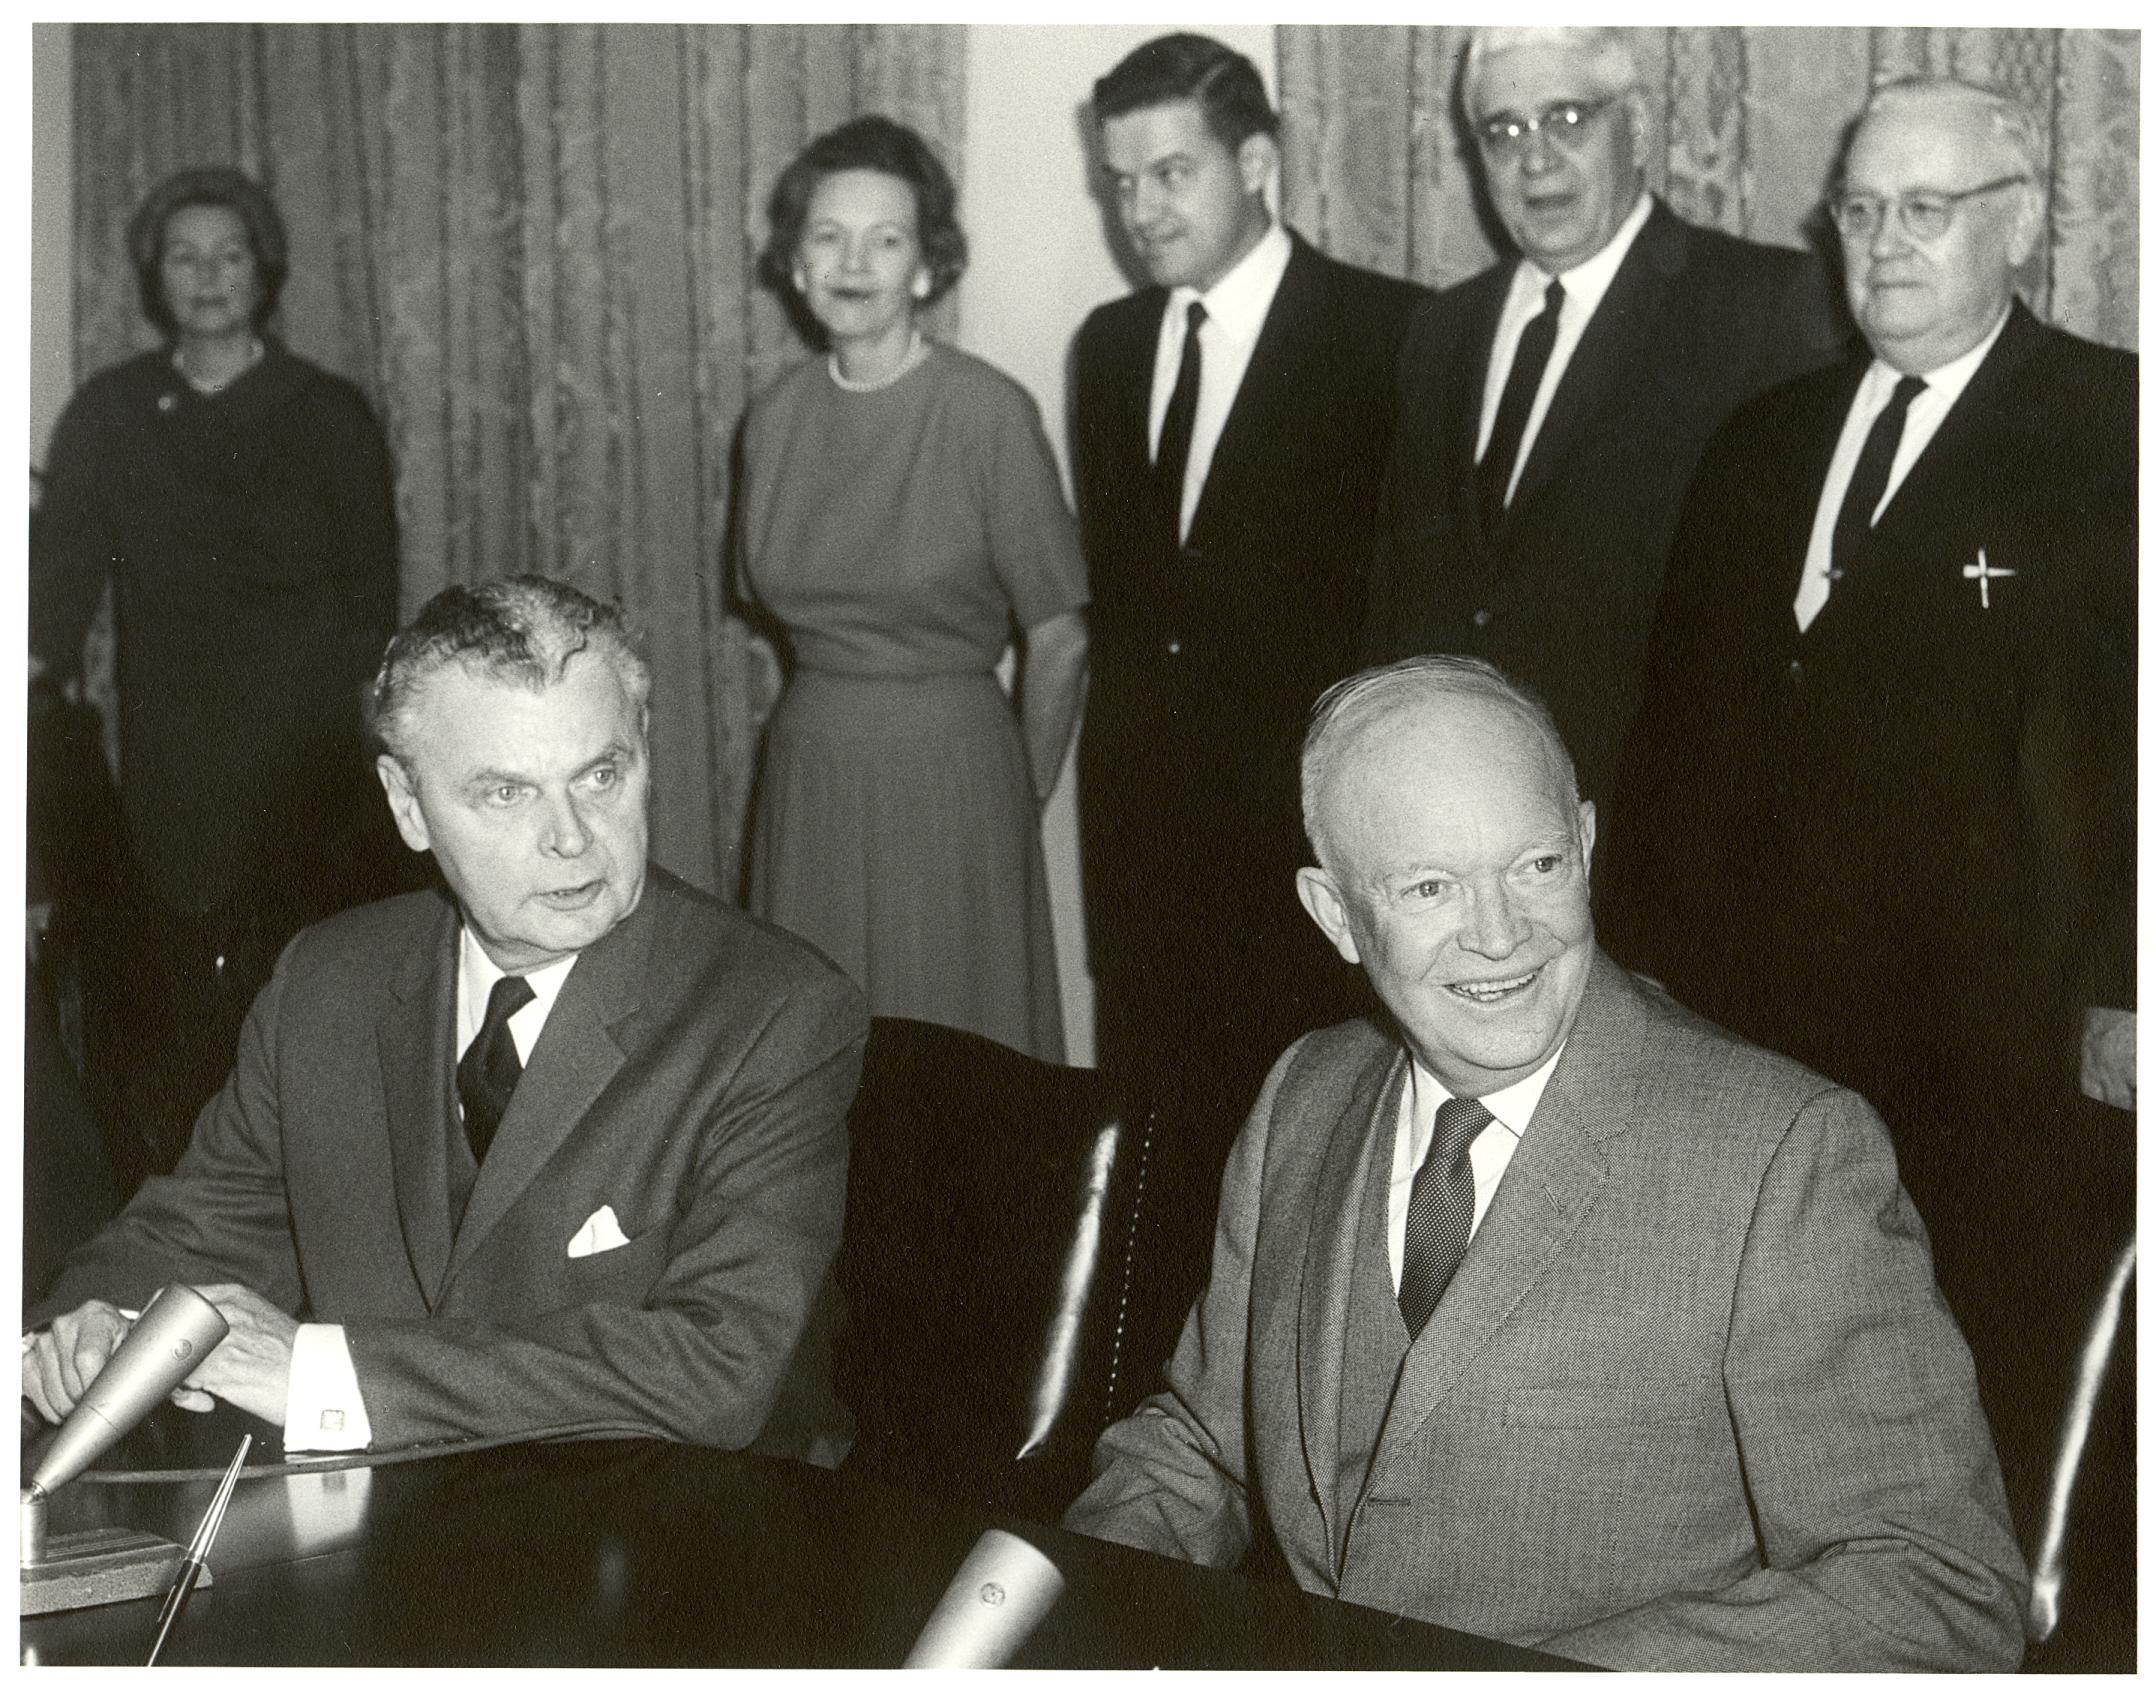 john_diefenbaker_and_dwight_eisenhower_at_signing_of_columbia_river_treaty_january_1961